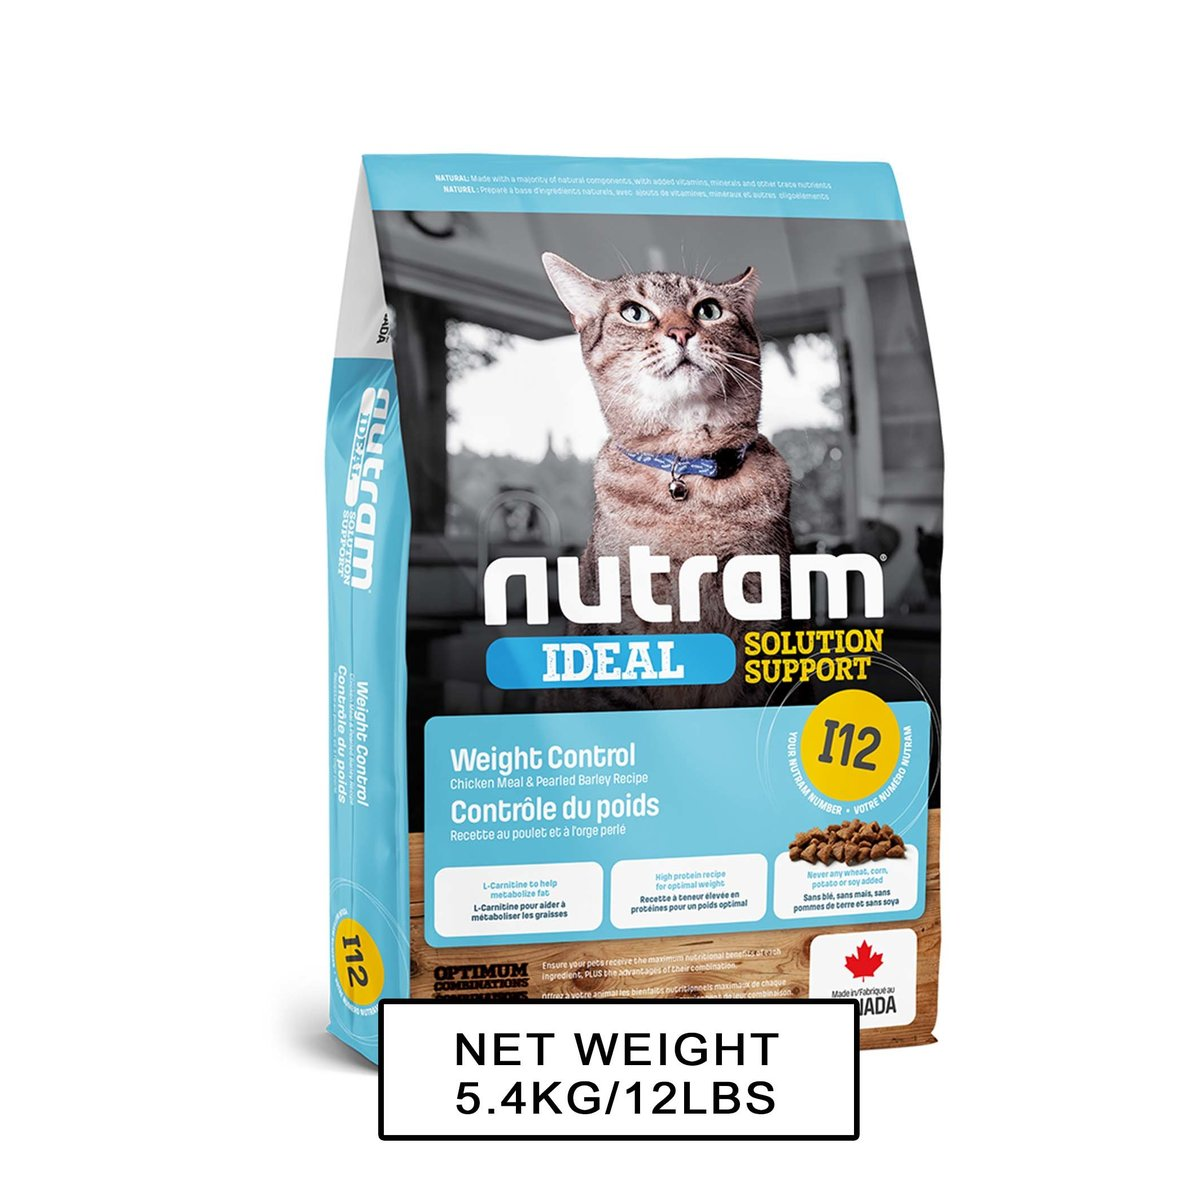 I12 Nutram Ideal Solution Support Weight Control Cat Food 5.4kg